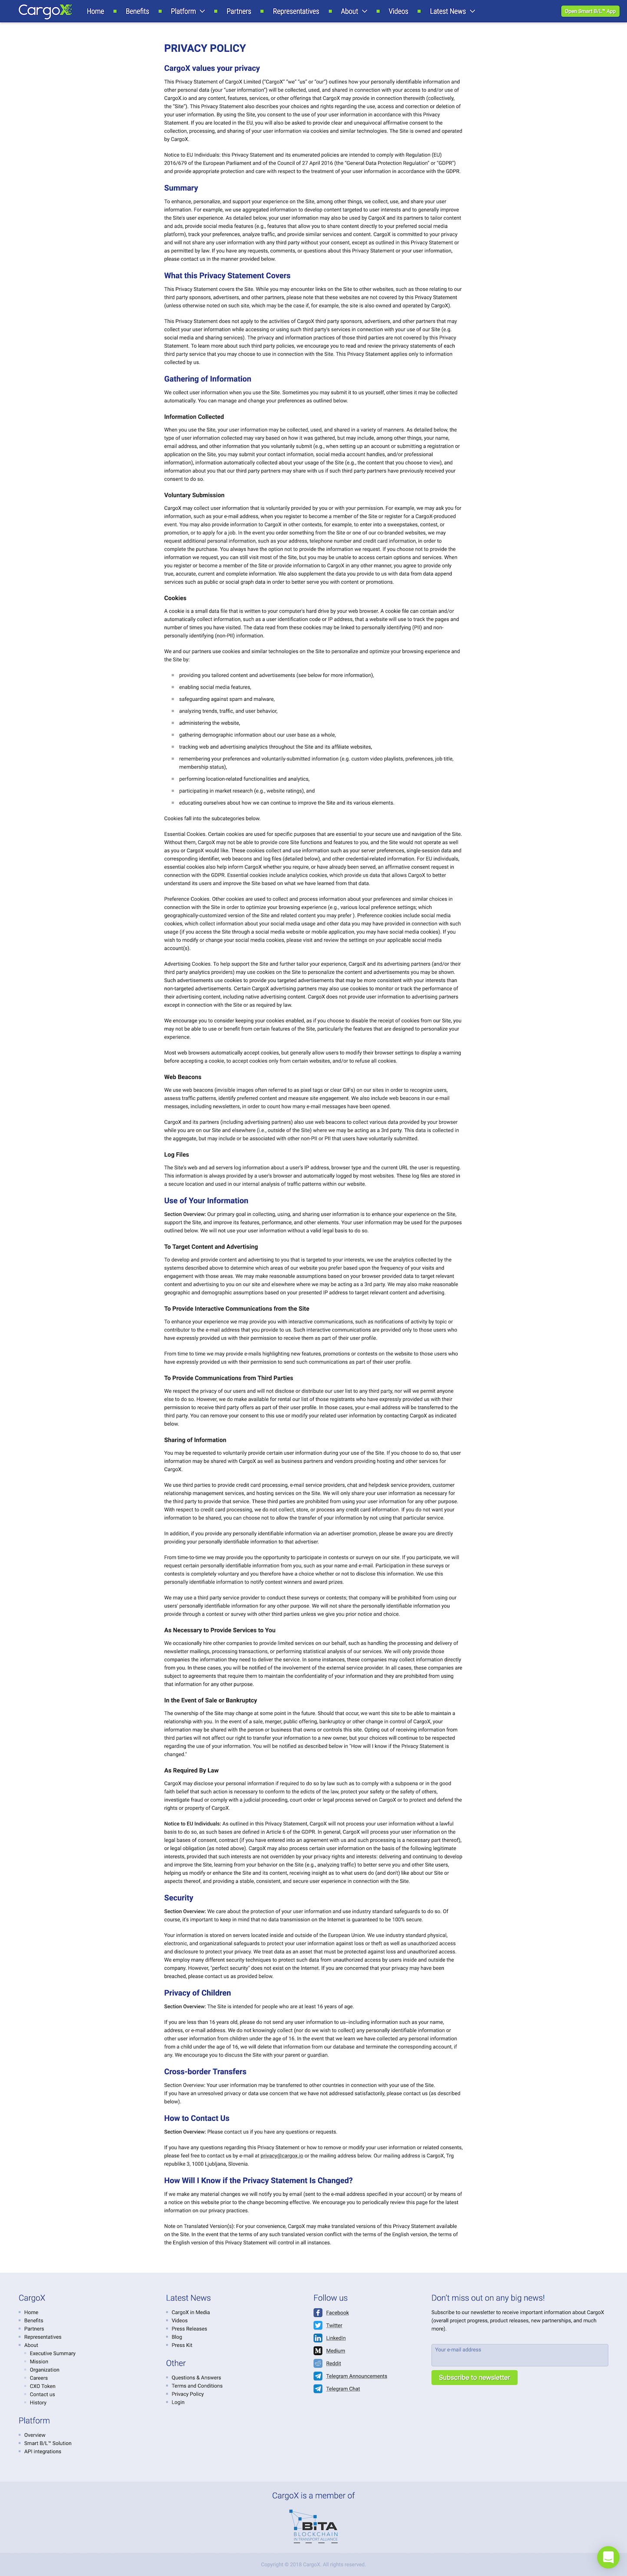 Screenshot of the Privacy Policy page from the CargoX website.